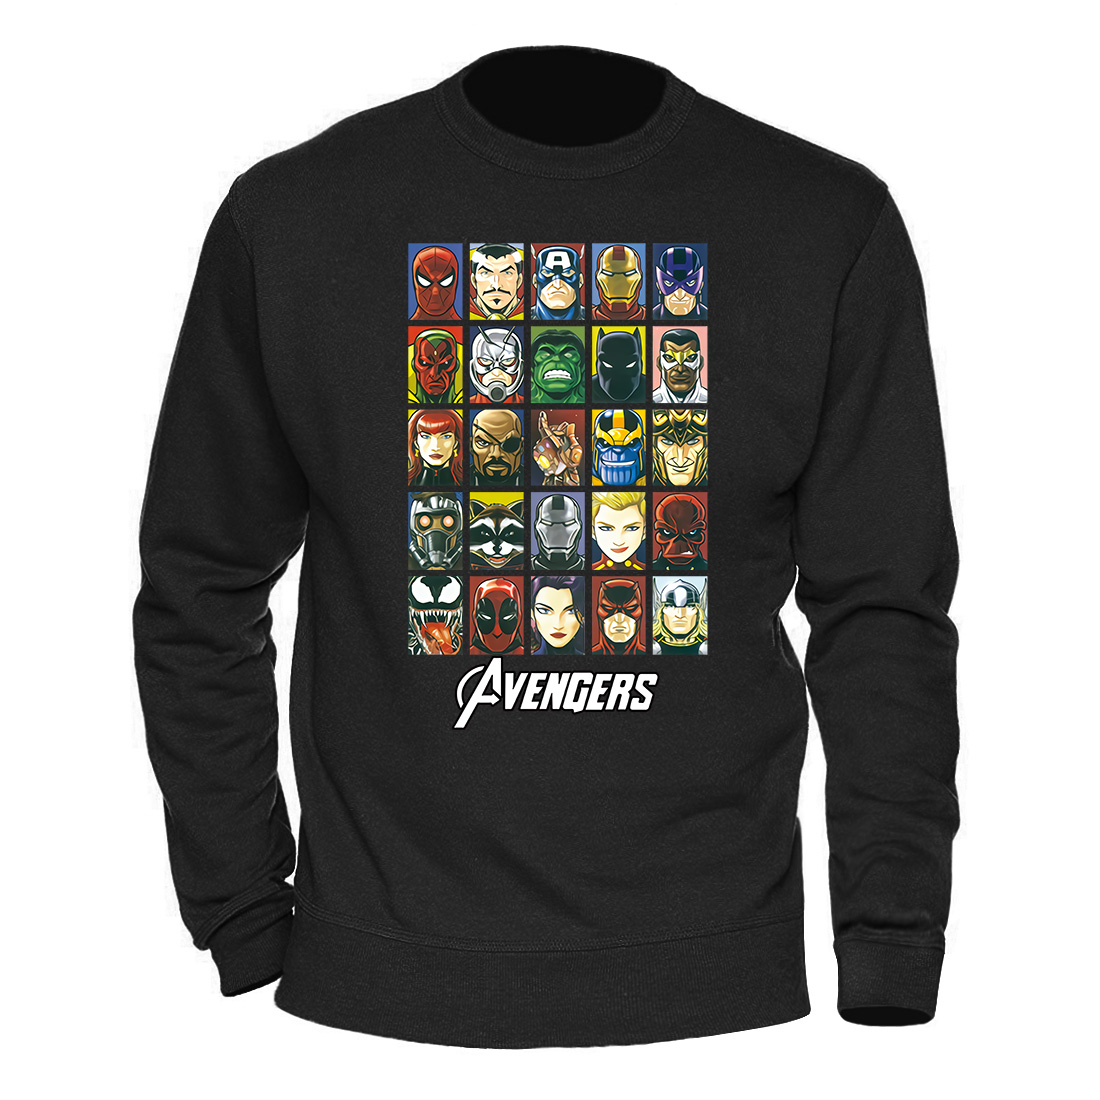 2020 New Brand Marvel Men Fashion Hoodies Sweatshirt Men Suprem Skateboards Male Winter Cotton Hooded Sweatshirt Clothing